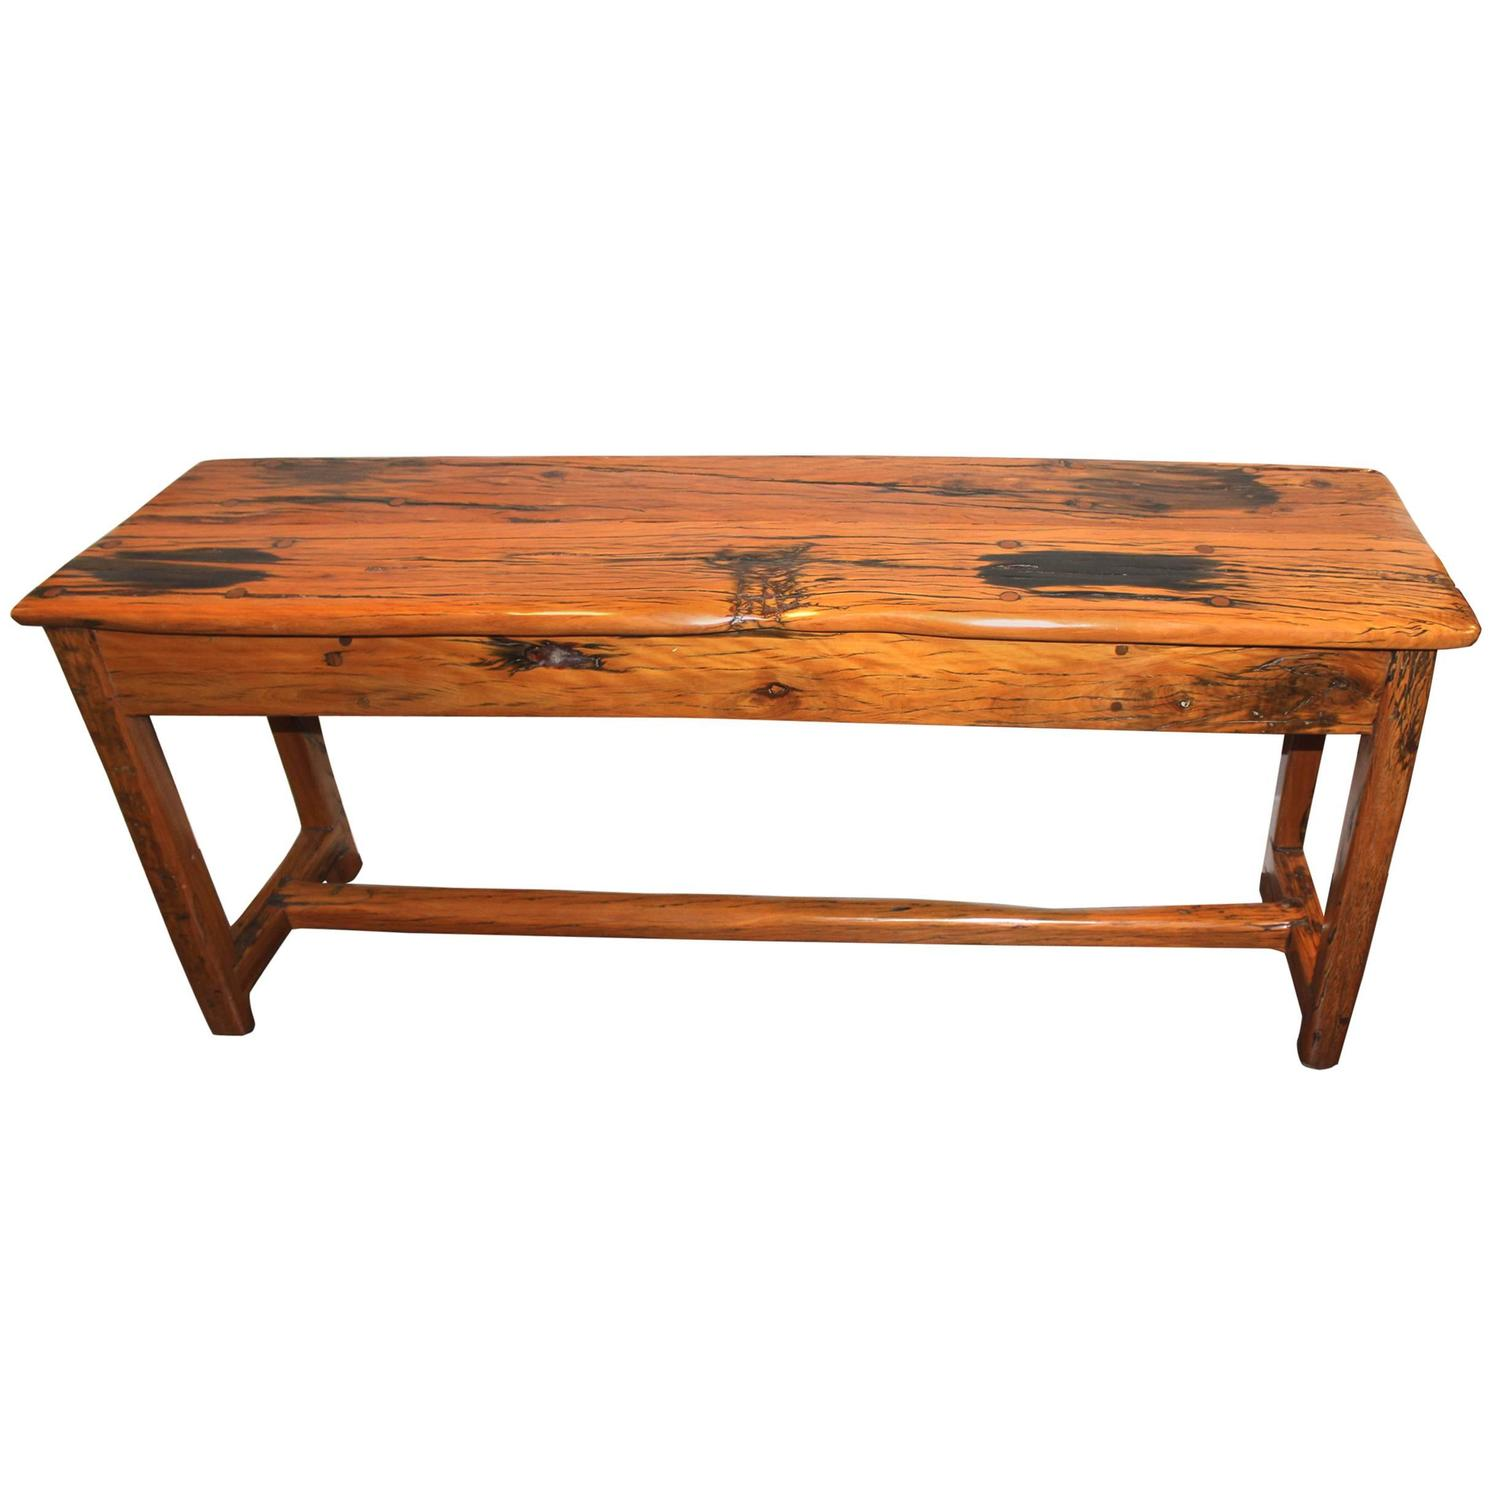 Rare 20th century elephant wood sofa or hall table at 1stdibs for Sofa central table